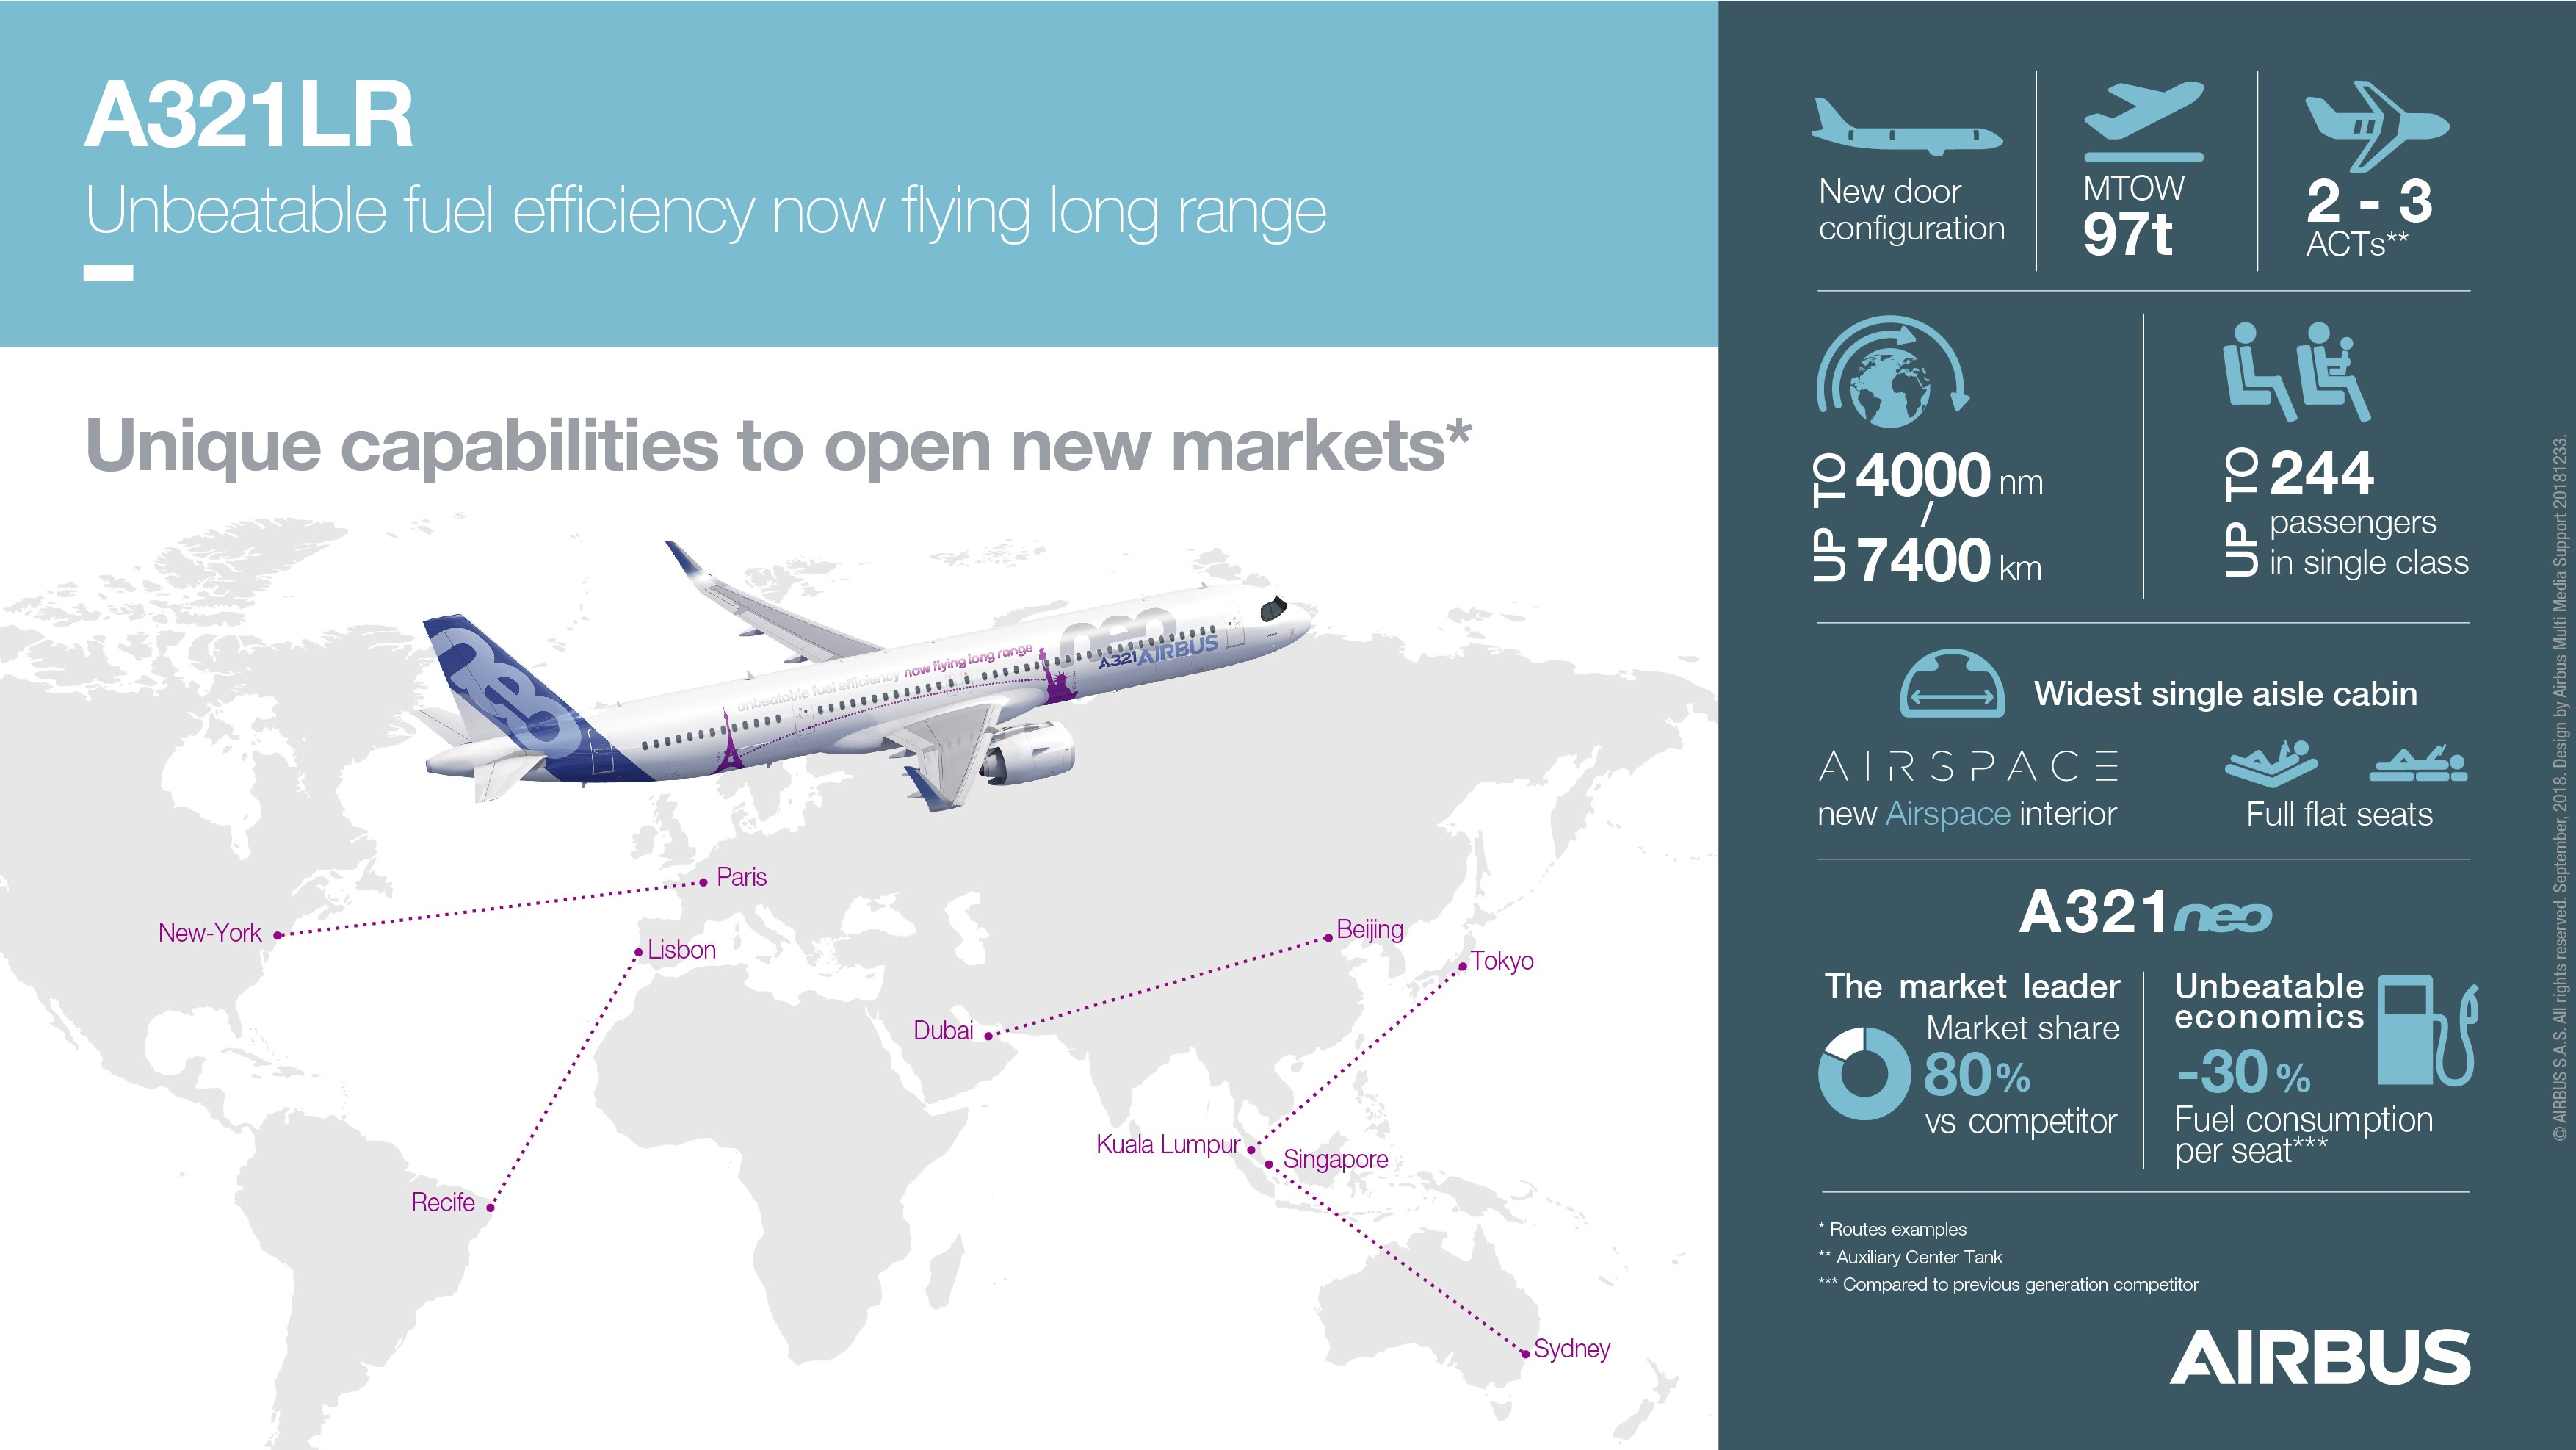 A321LR-Infographic